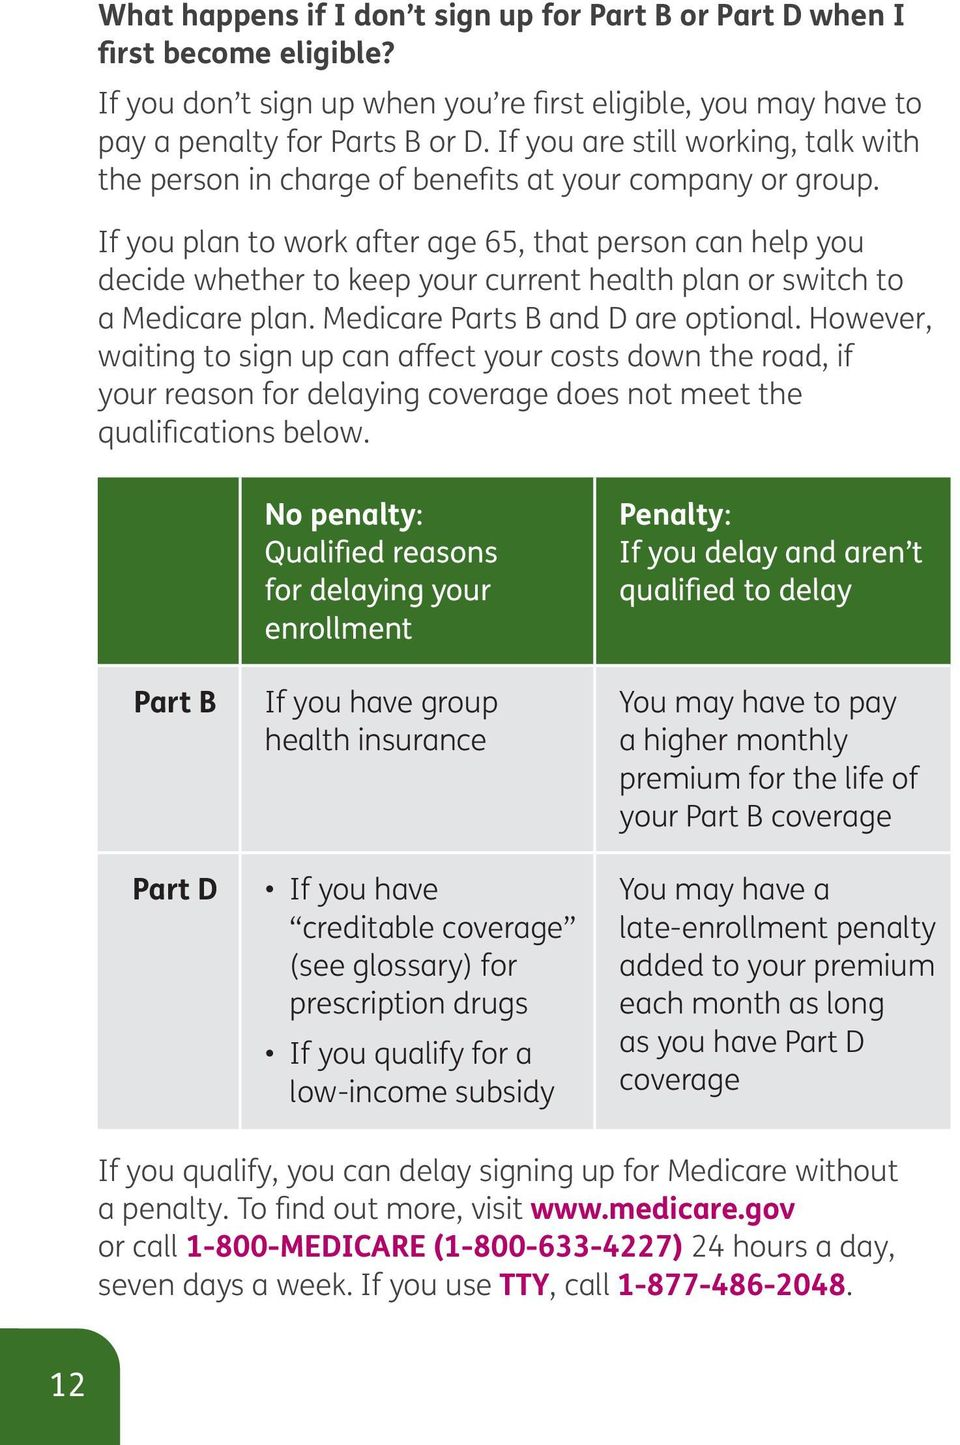 If you plan to work after age 65, that person can help you decide whether to keep your current health plan or switch to a Medicare plan. Medicare Parts B and D are optional.